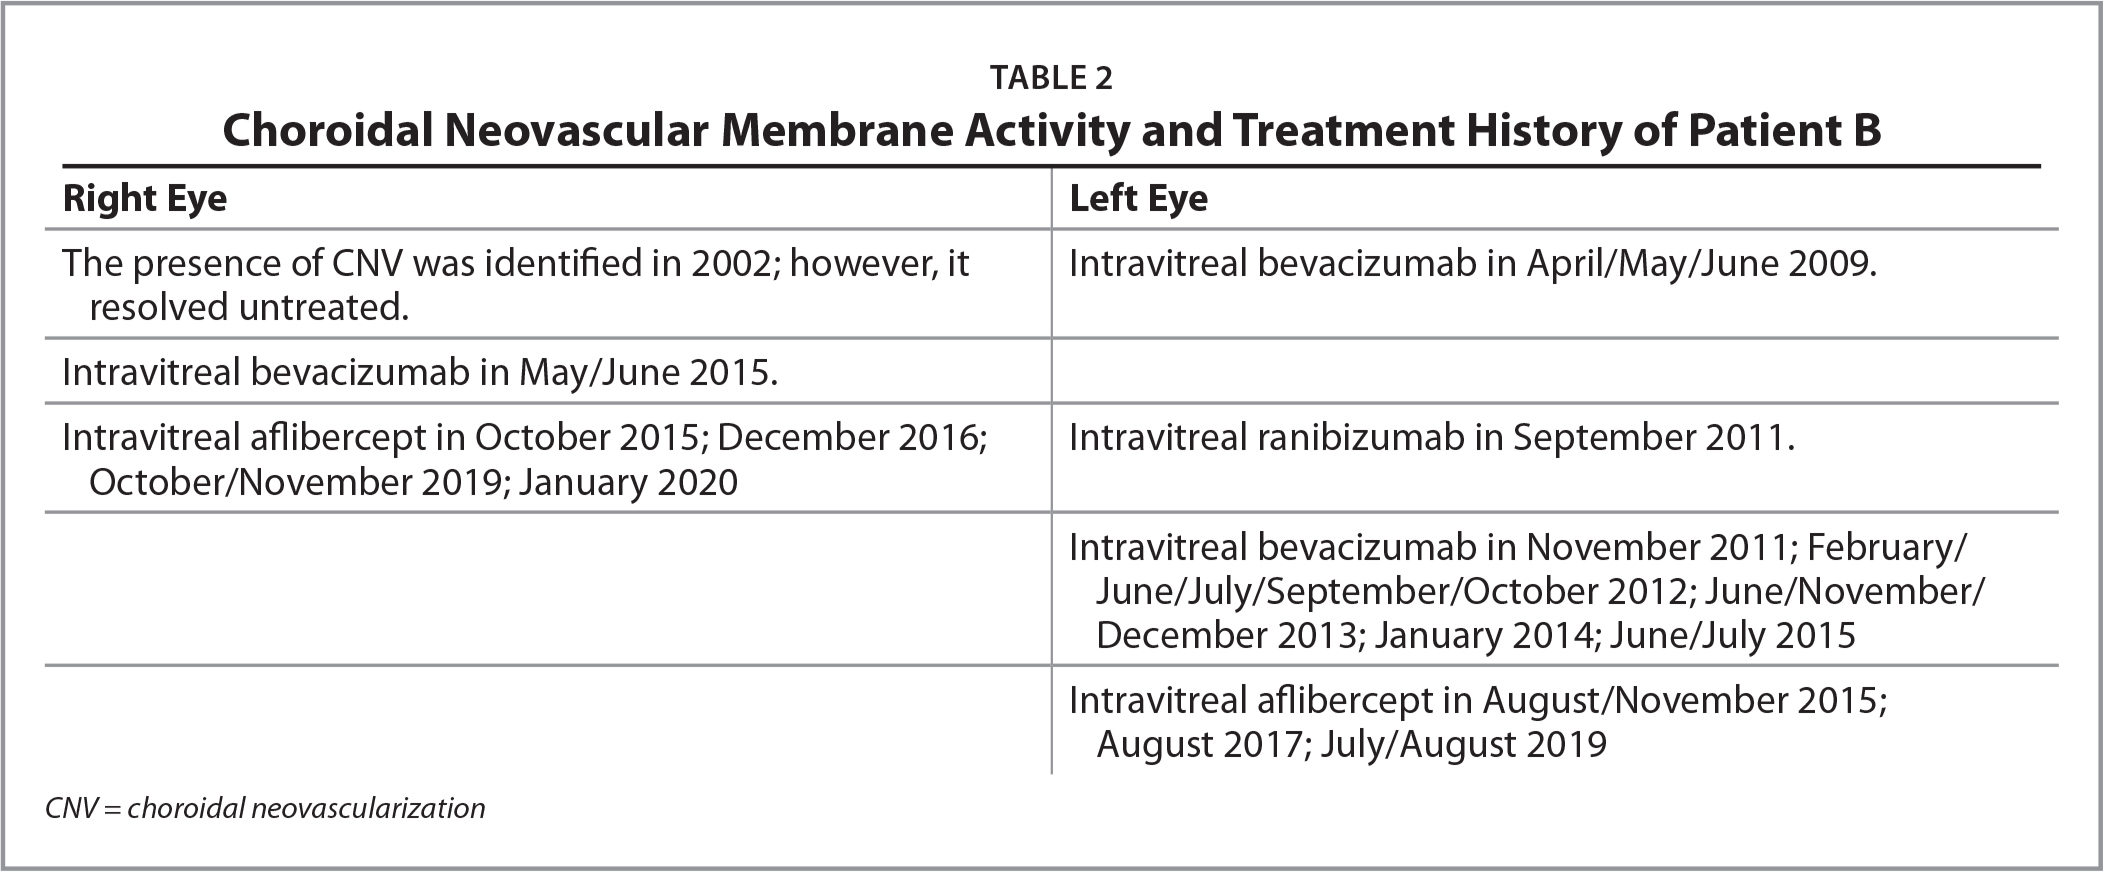 Choroidal Neovascular Membrane Activity and Treatment History of Patient B